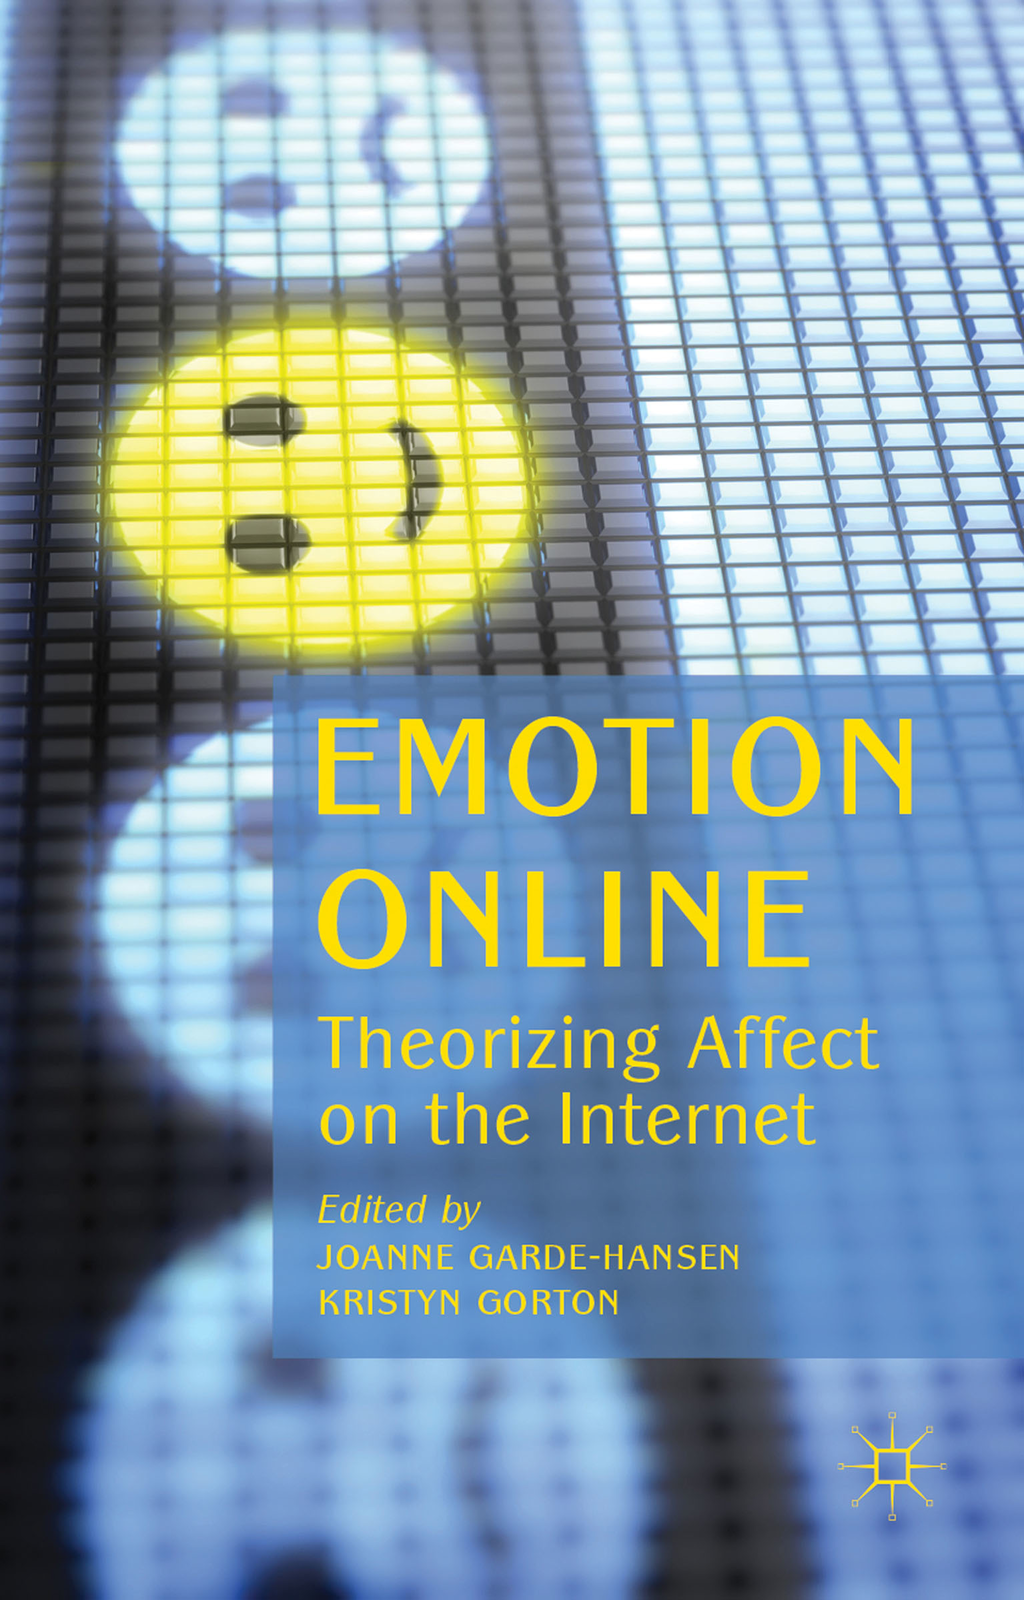 Emotion Online Theorizing Affect on the Internet